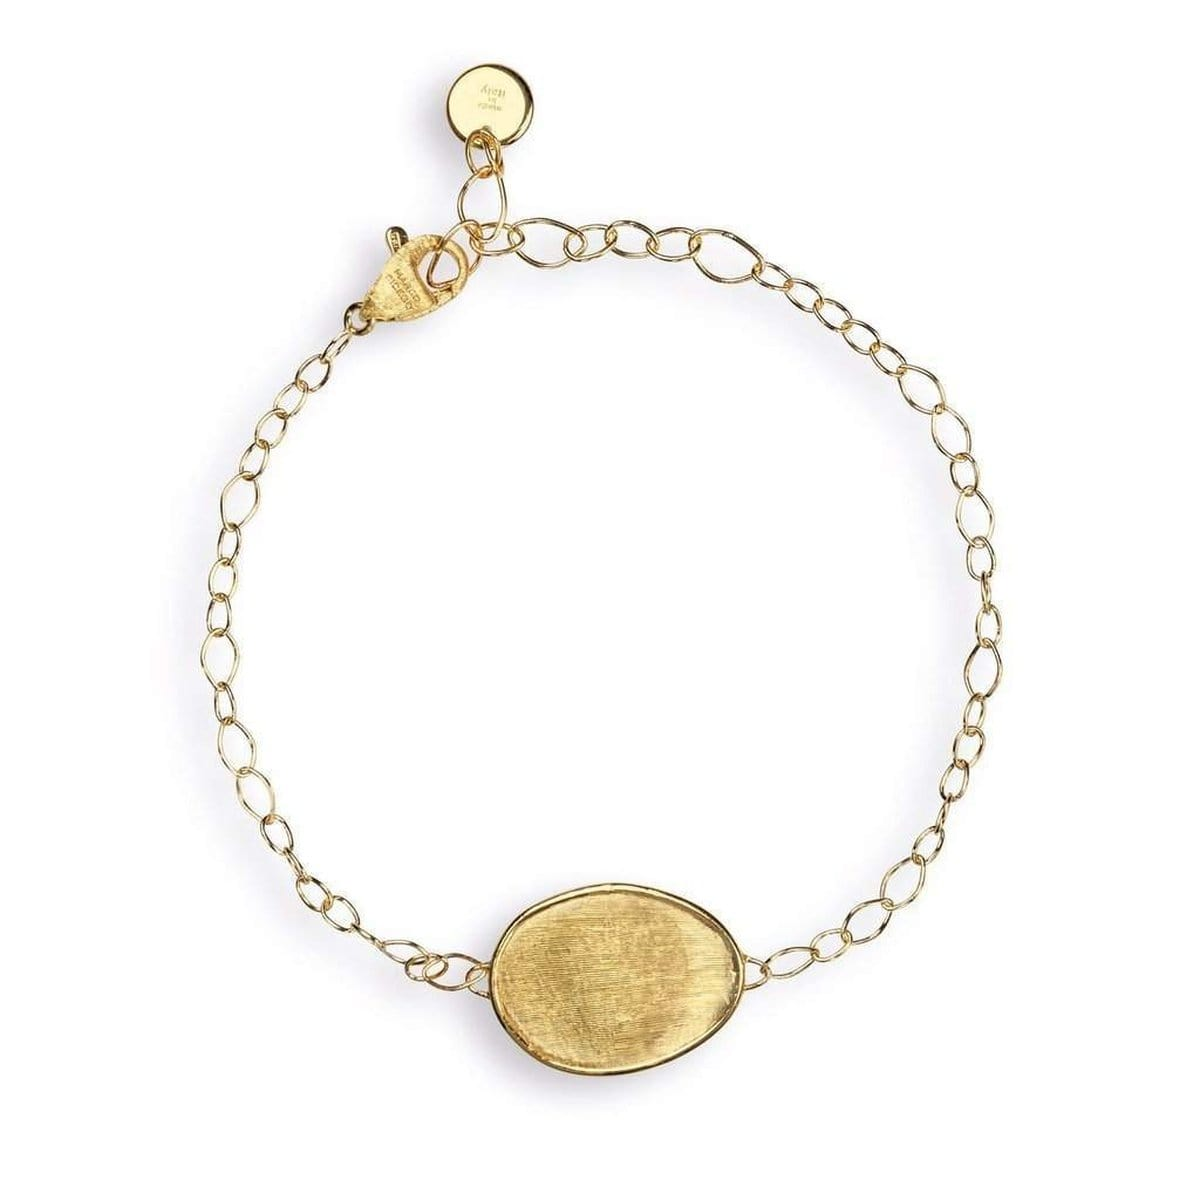 marco jewels en gemstones jaipur gold yellow bracelet y natural bicego